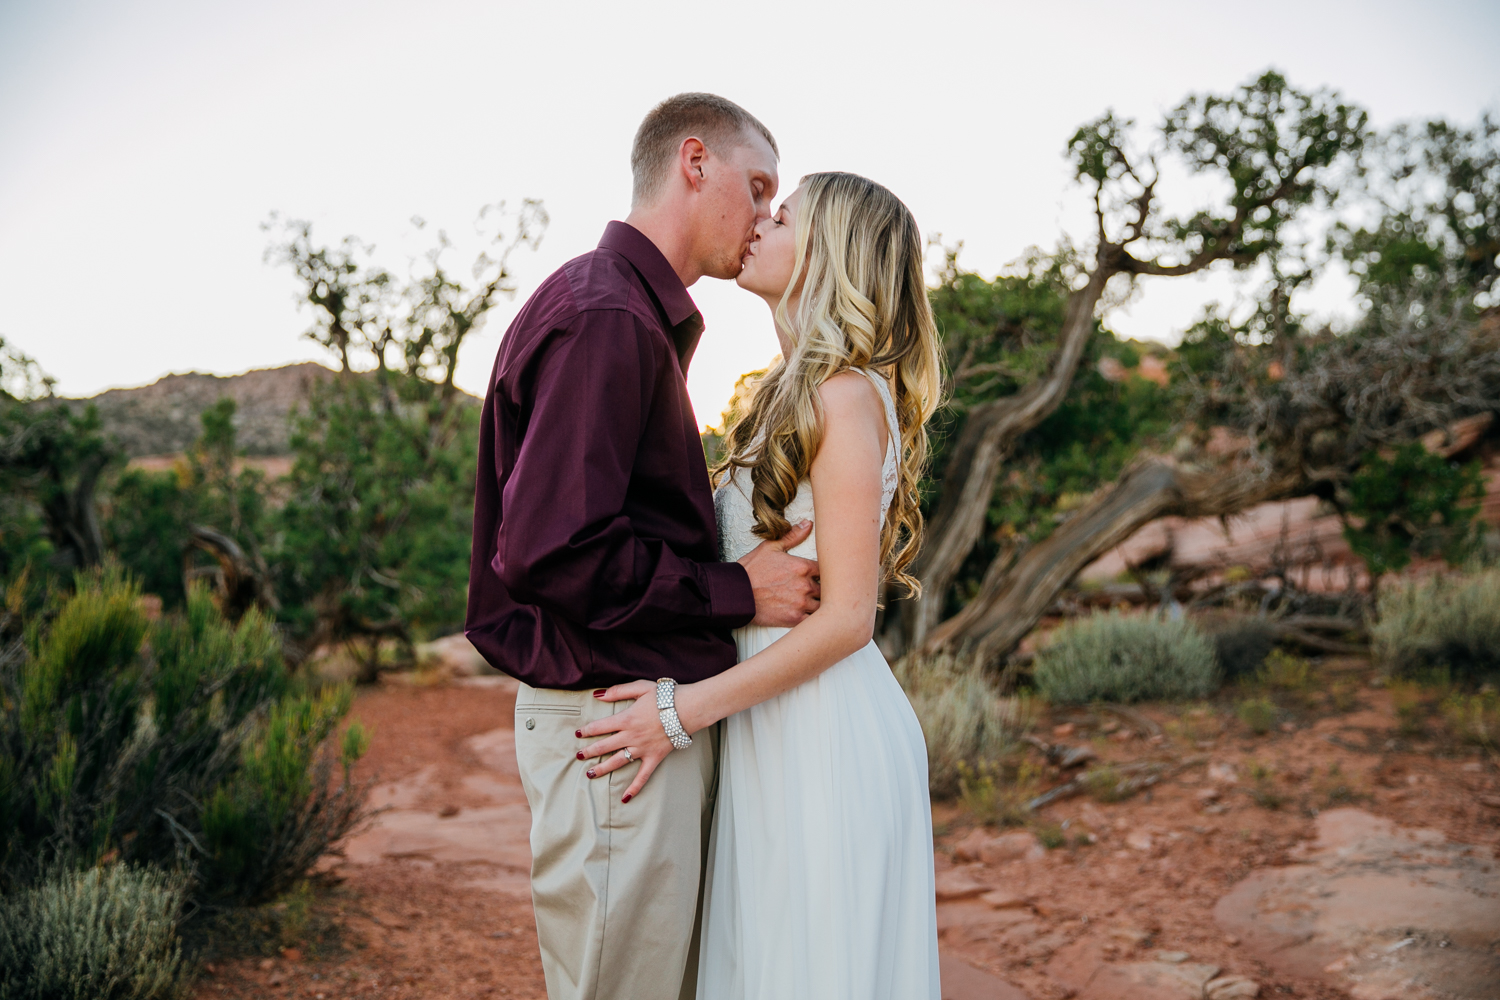 grand-junction-colorado-monument-wedding-photographer-engagements-24.jpg